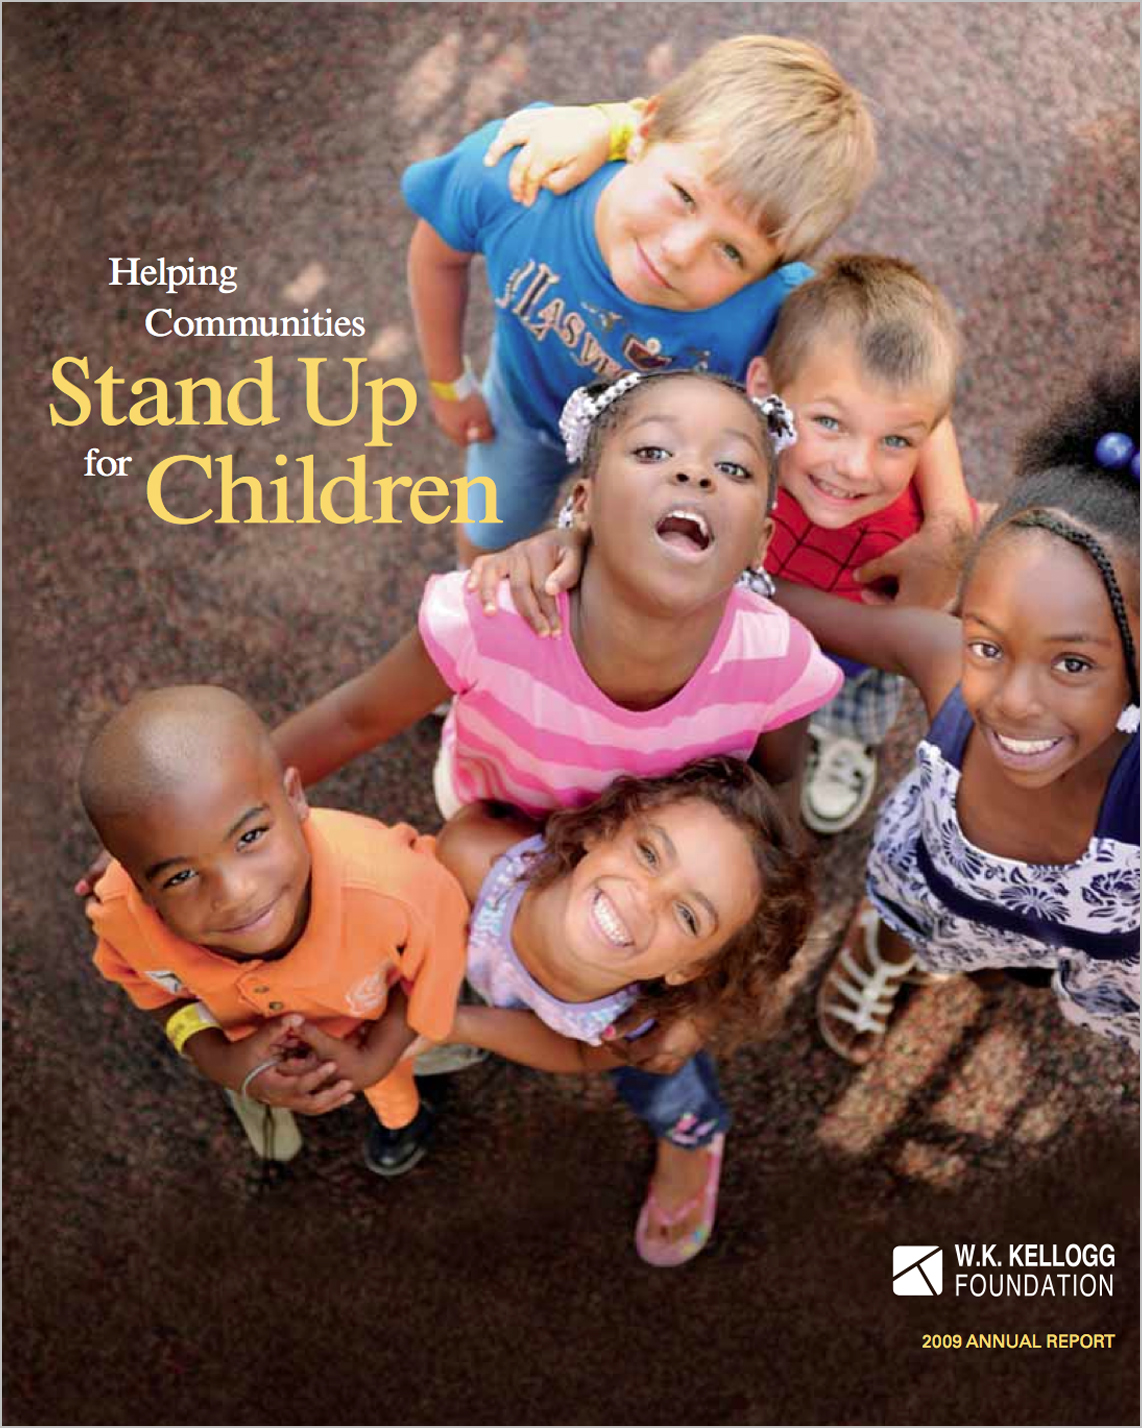 2009 W.K. Kellogg Foundation Annual Report - W.K. Kellogg Foundation